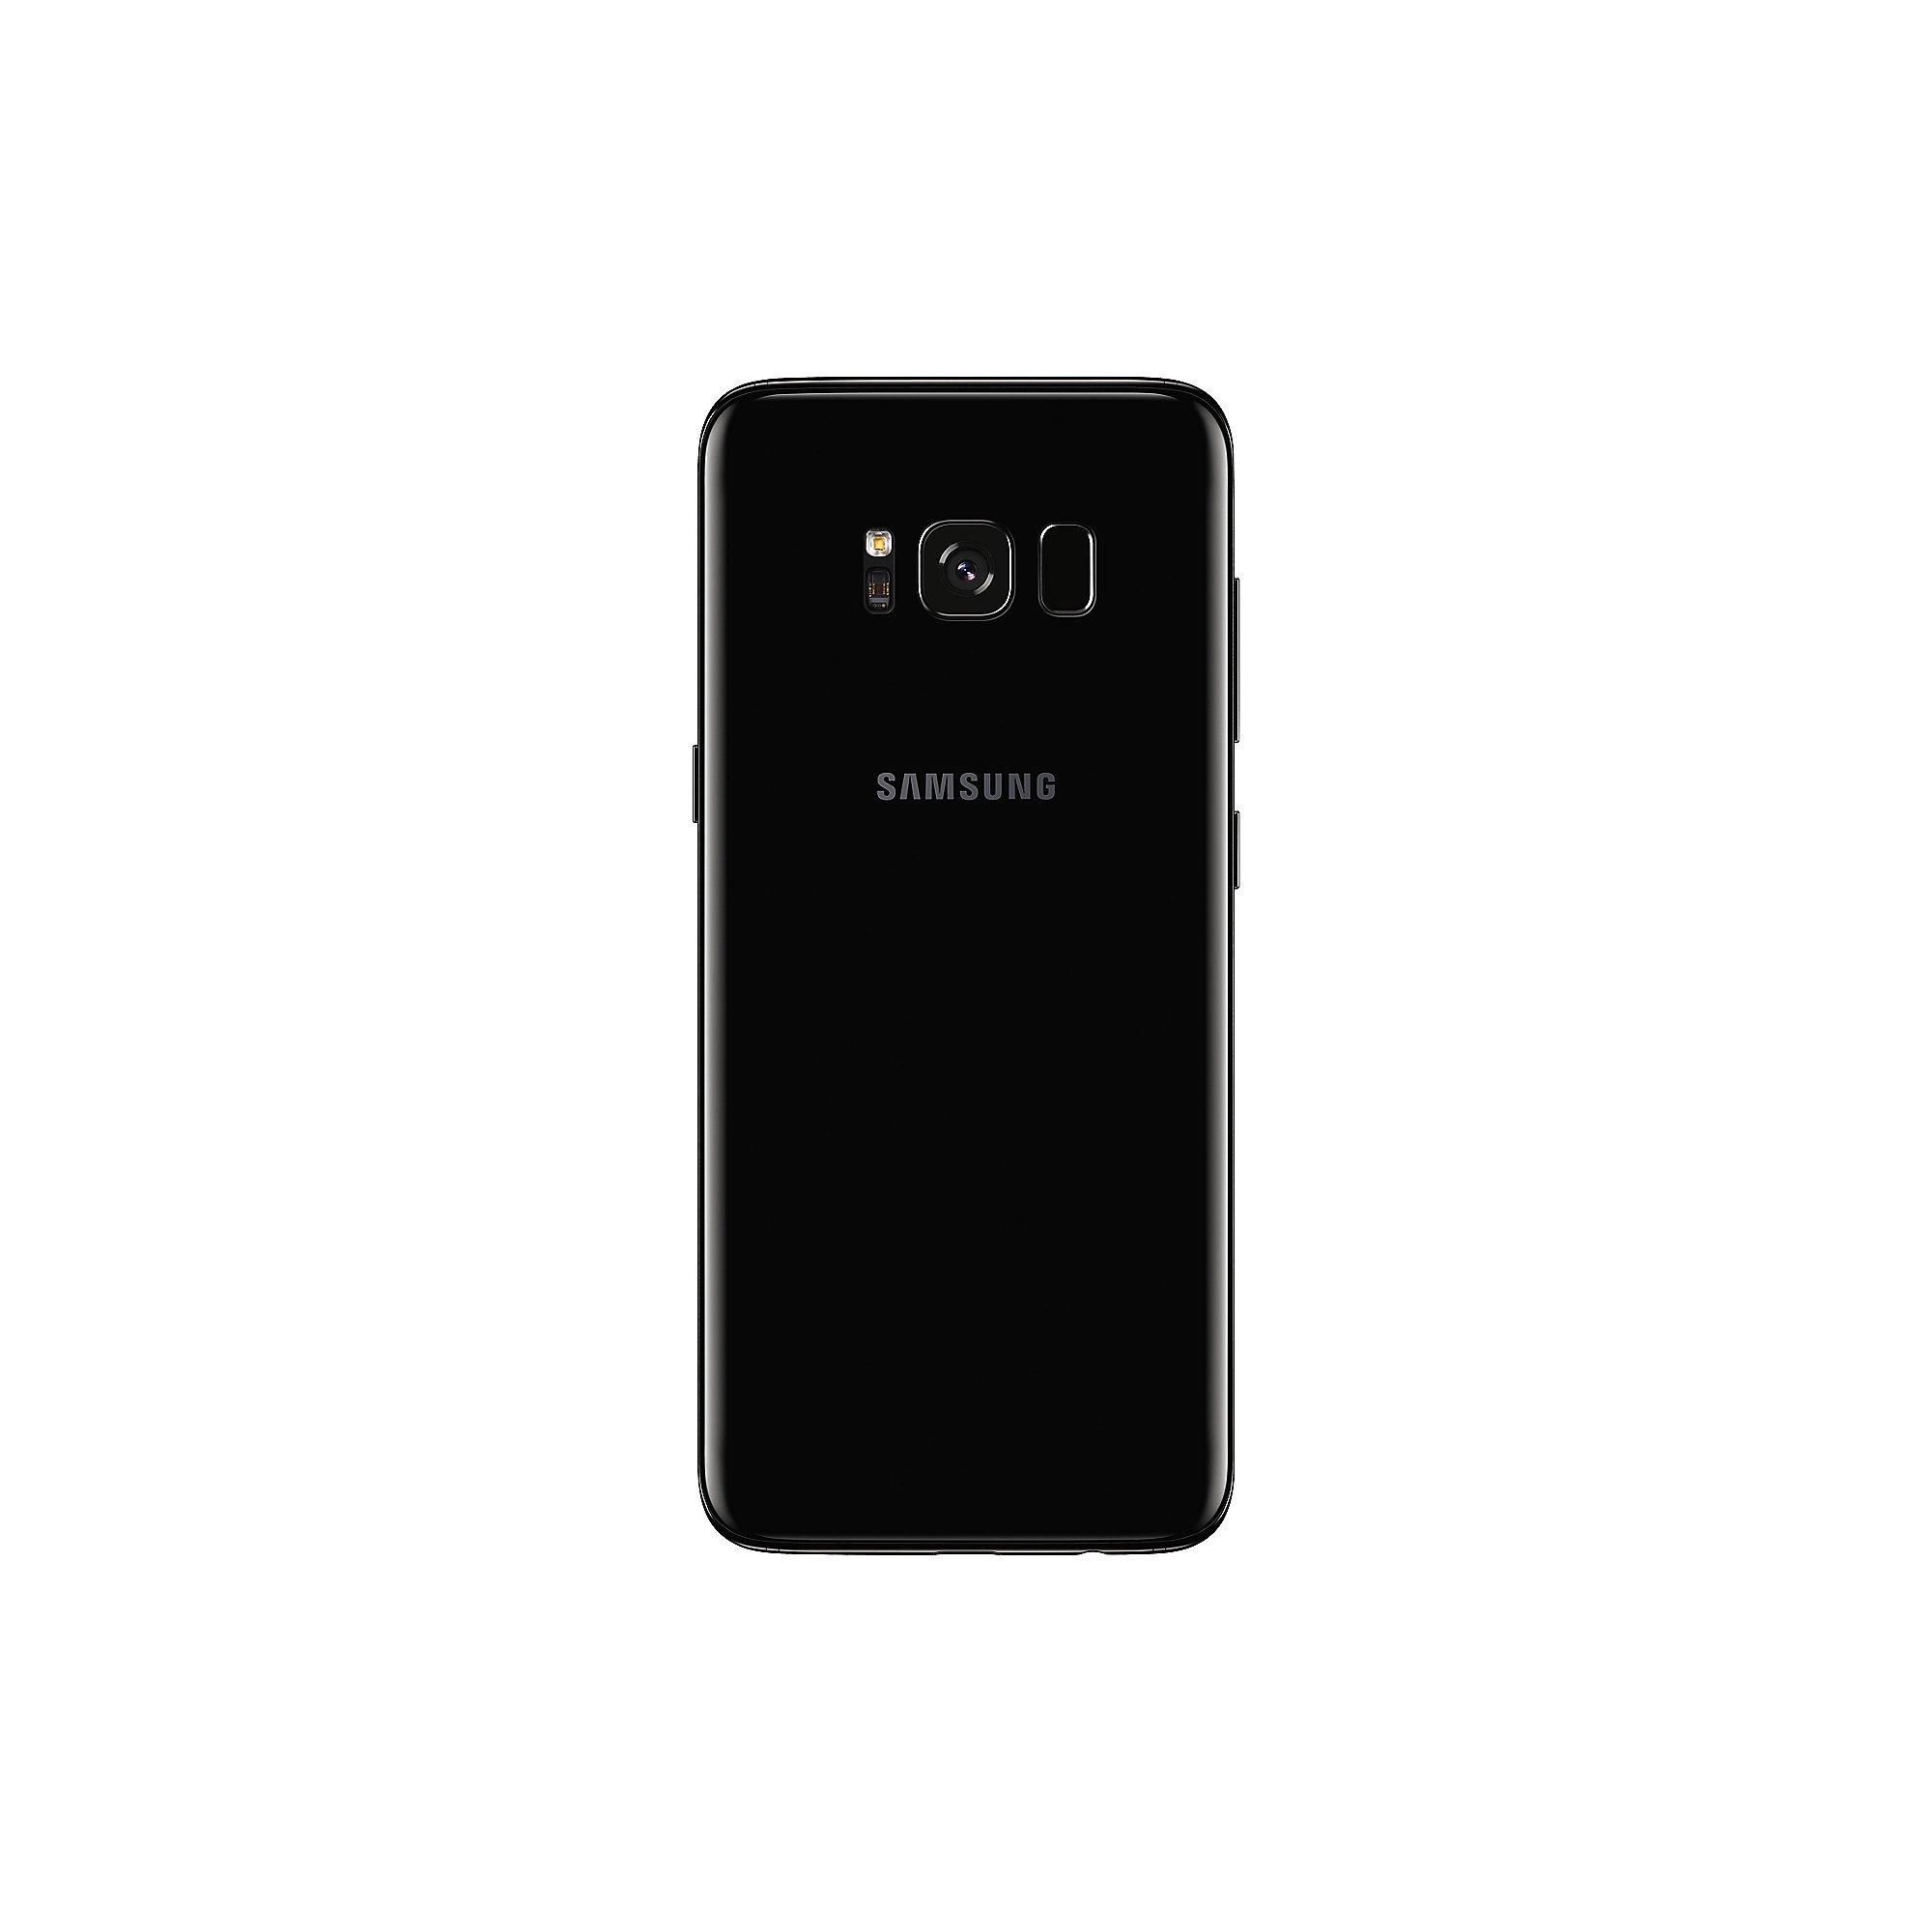 Samsung GALAXY S8 midnight black G950F 64 GB Android Smartphone